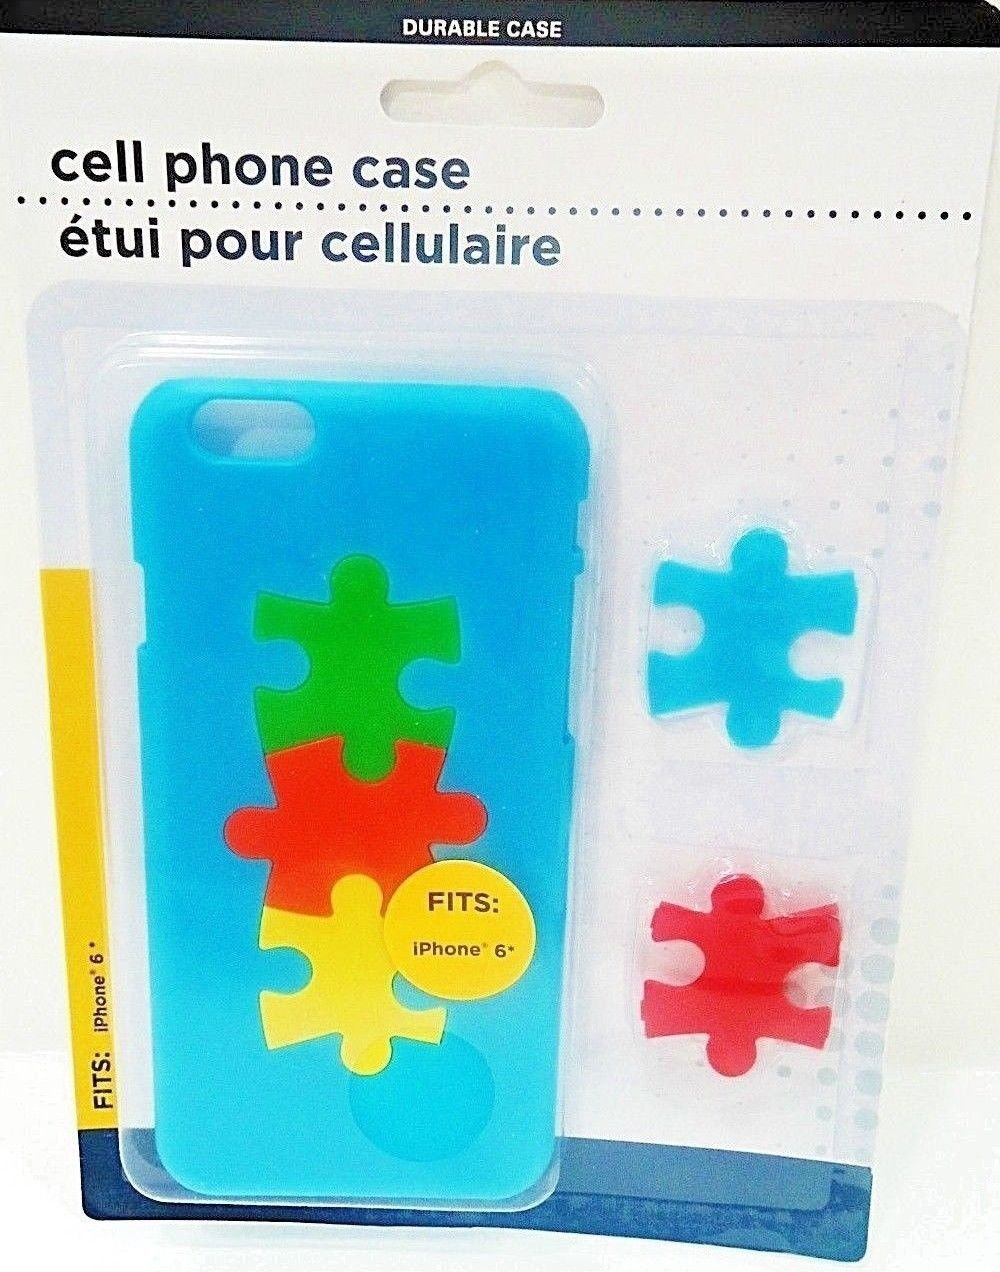 APPLE - iPHONE - 6 - BLUE - JIGSAW - PUZZLE - CELL PHONE - HARD - CASE - NEW